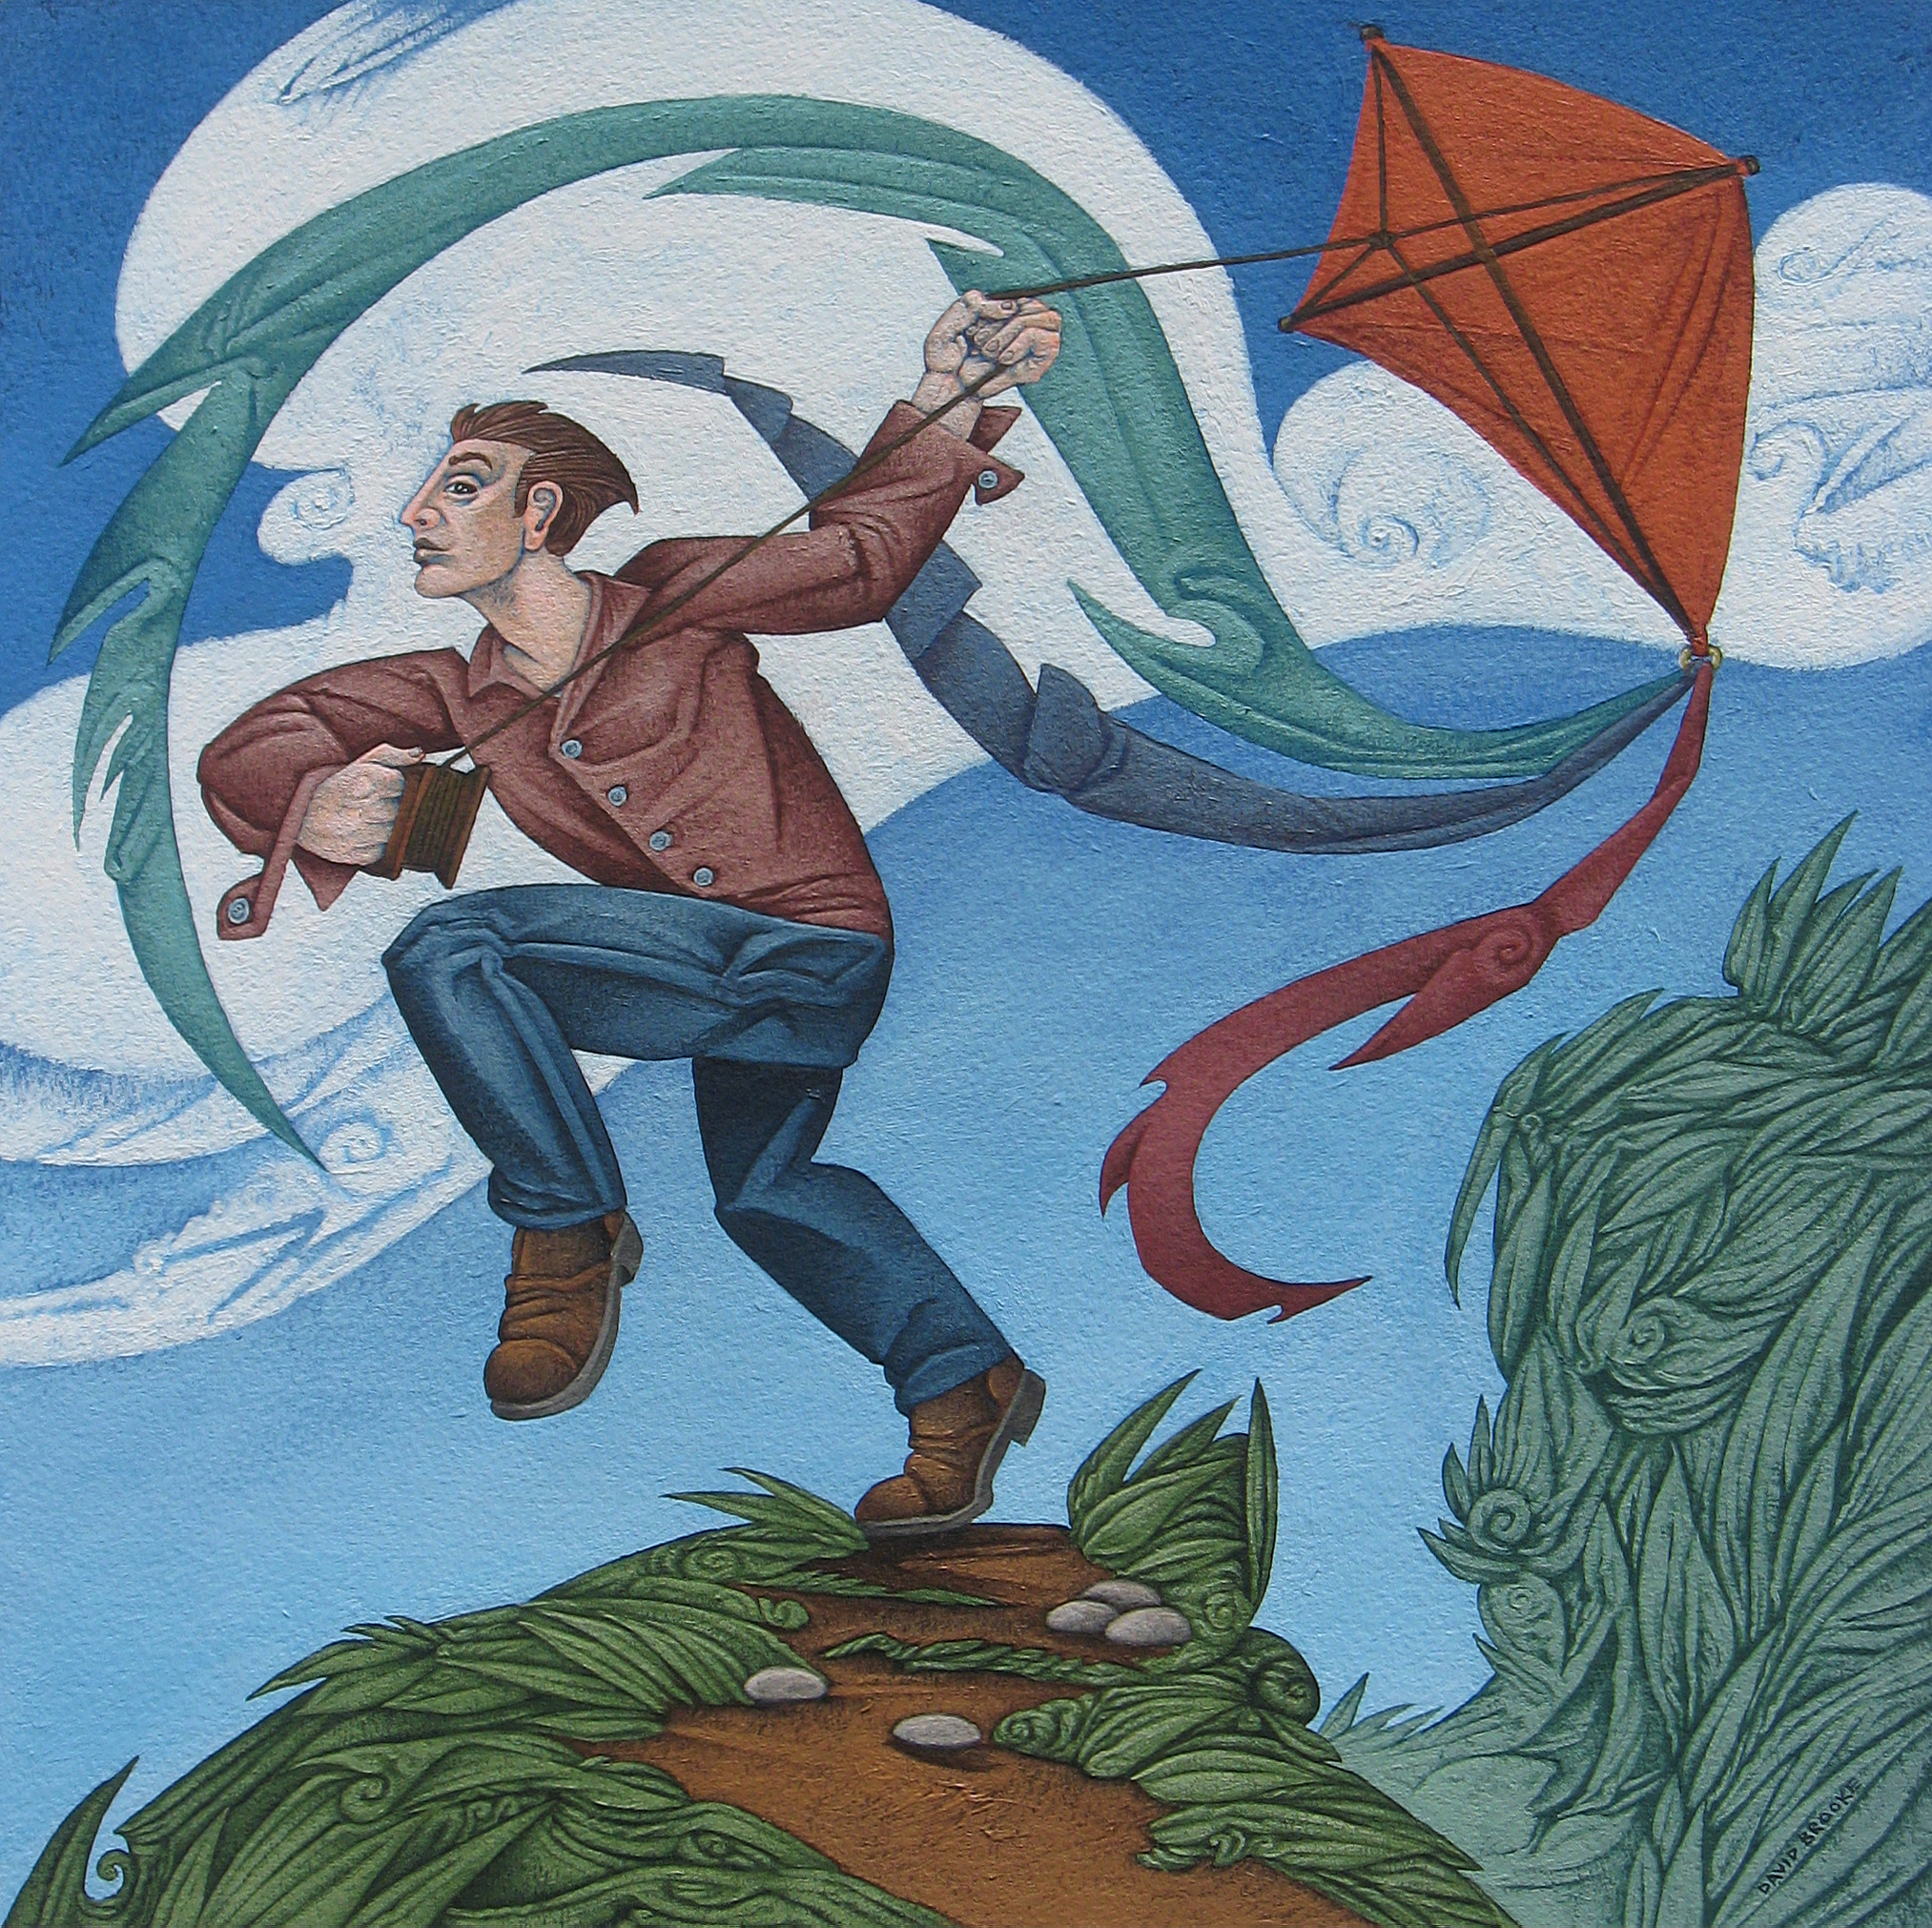 Kite Flying 5 by David Brooke